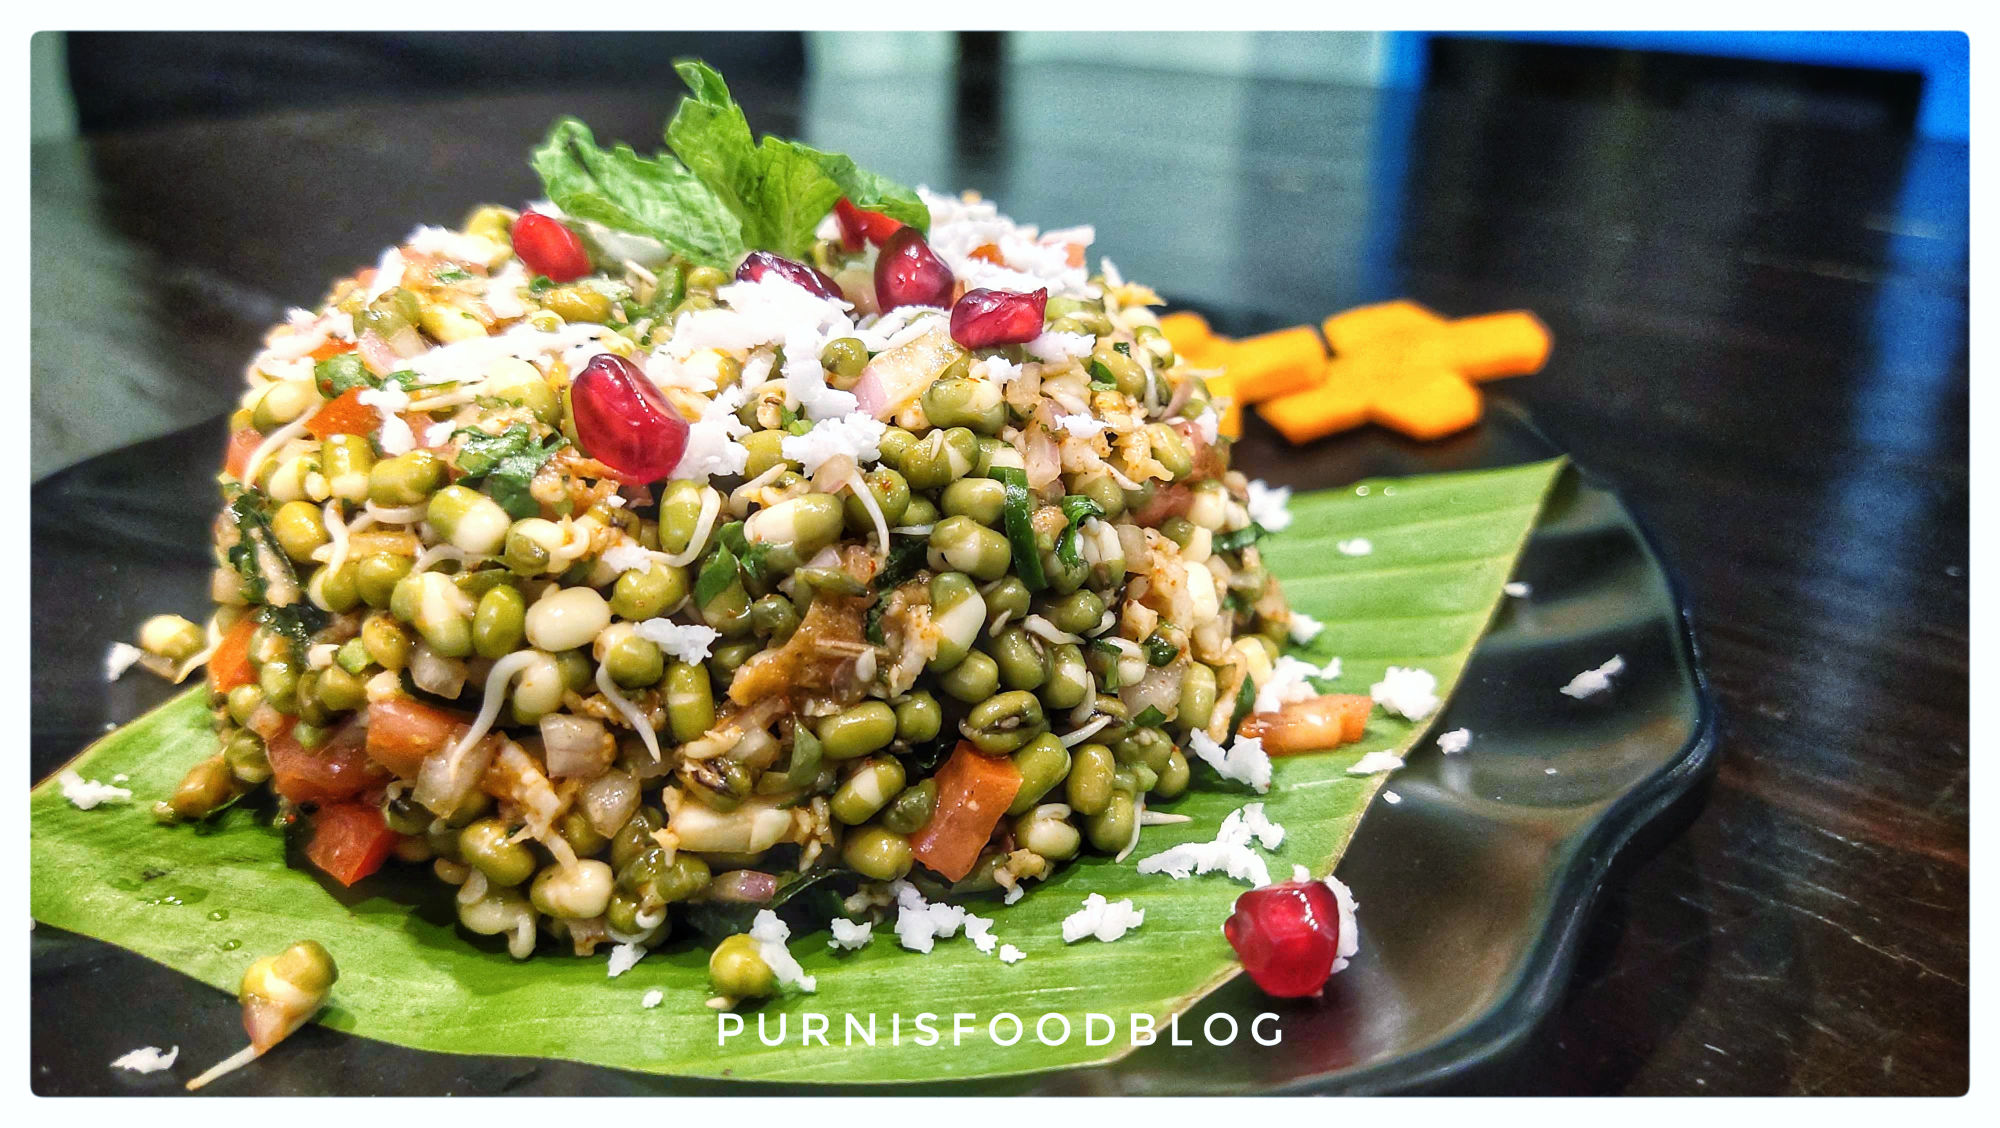 Purnis Food Blog-The Bangalore canteen